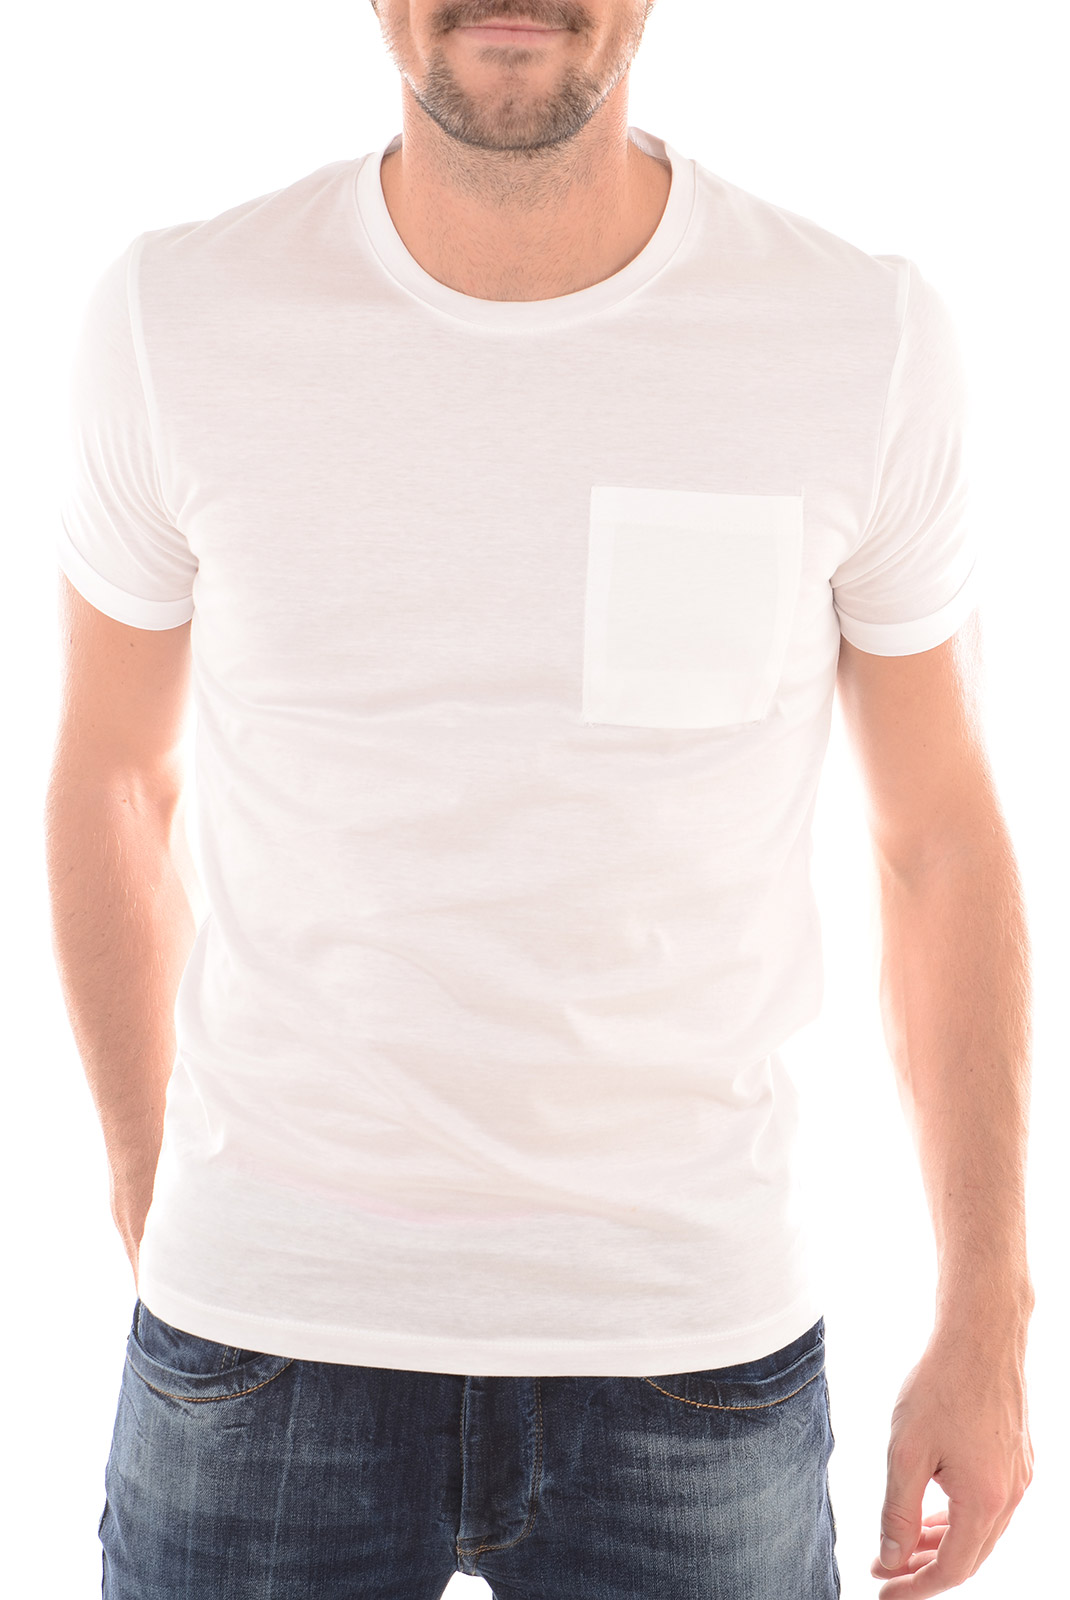 Tee-shirts  Selected DIEGO SS O-NECK BRIGHT WHITE